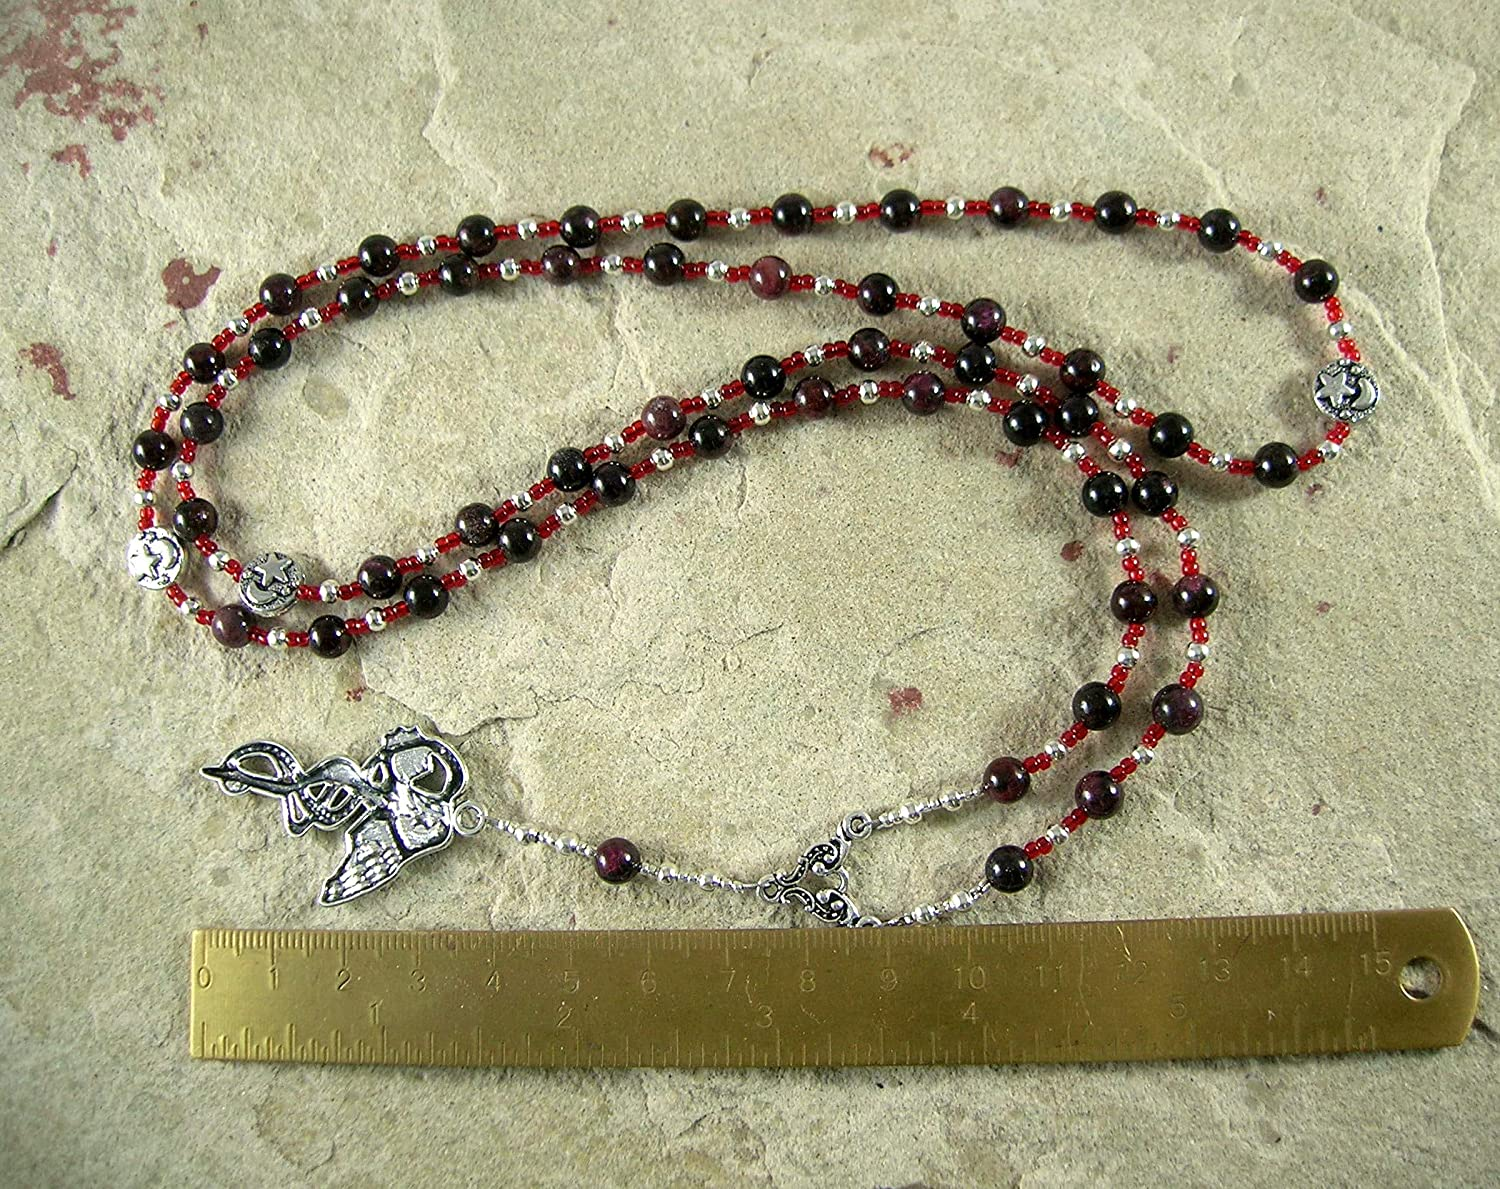 Lilith Prayer Bead Necklace in Garnet Sumerian//Babylonian Goddess of Fertility and Free Will